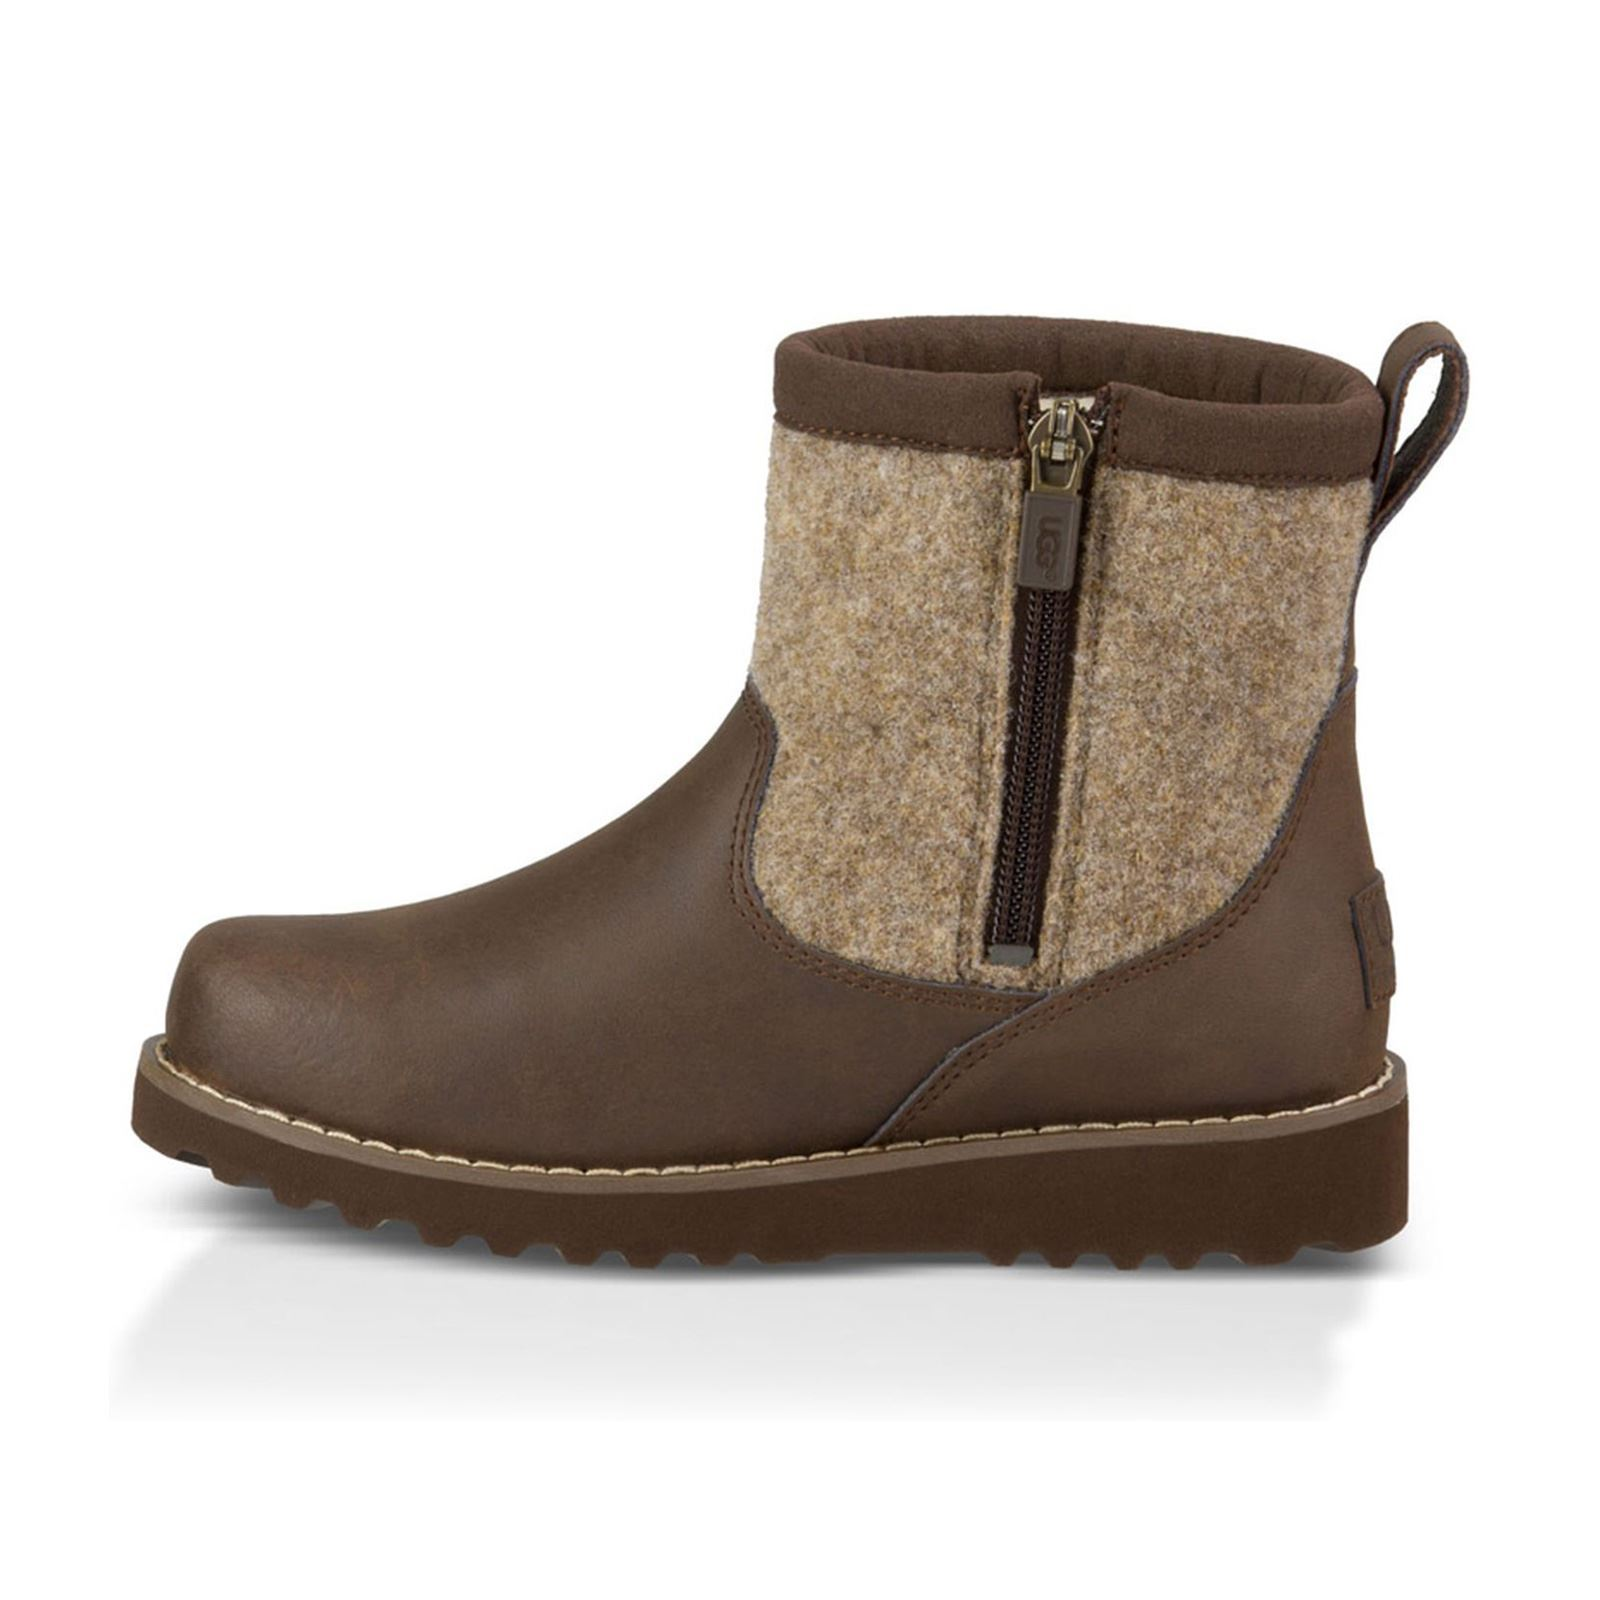 9 verified KEEN Footwear coupons and promo codes as of Dec 2. Popular now: Up to 40% Off Sale Items. Trust cemedomino.ml for Shoes savings.